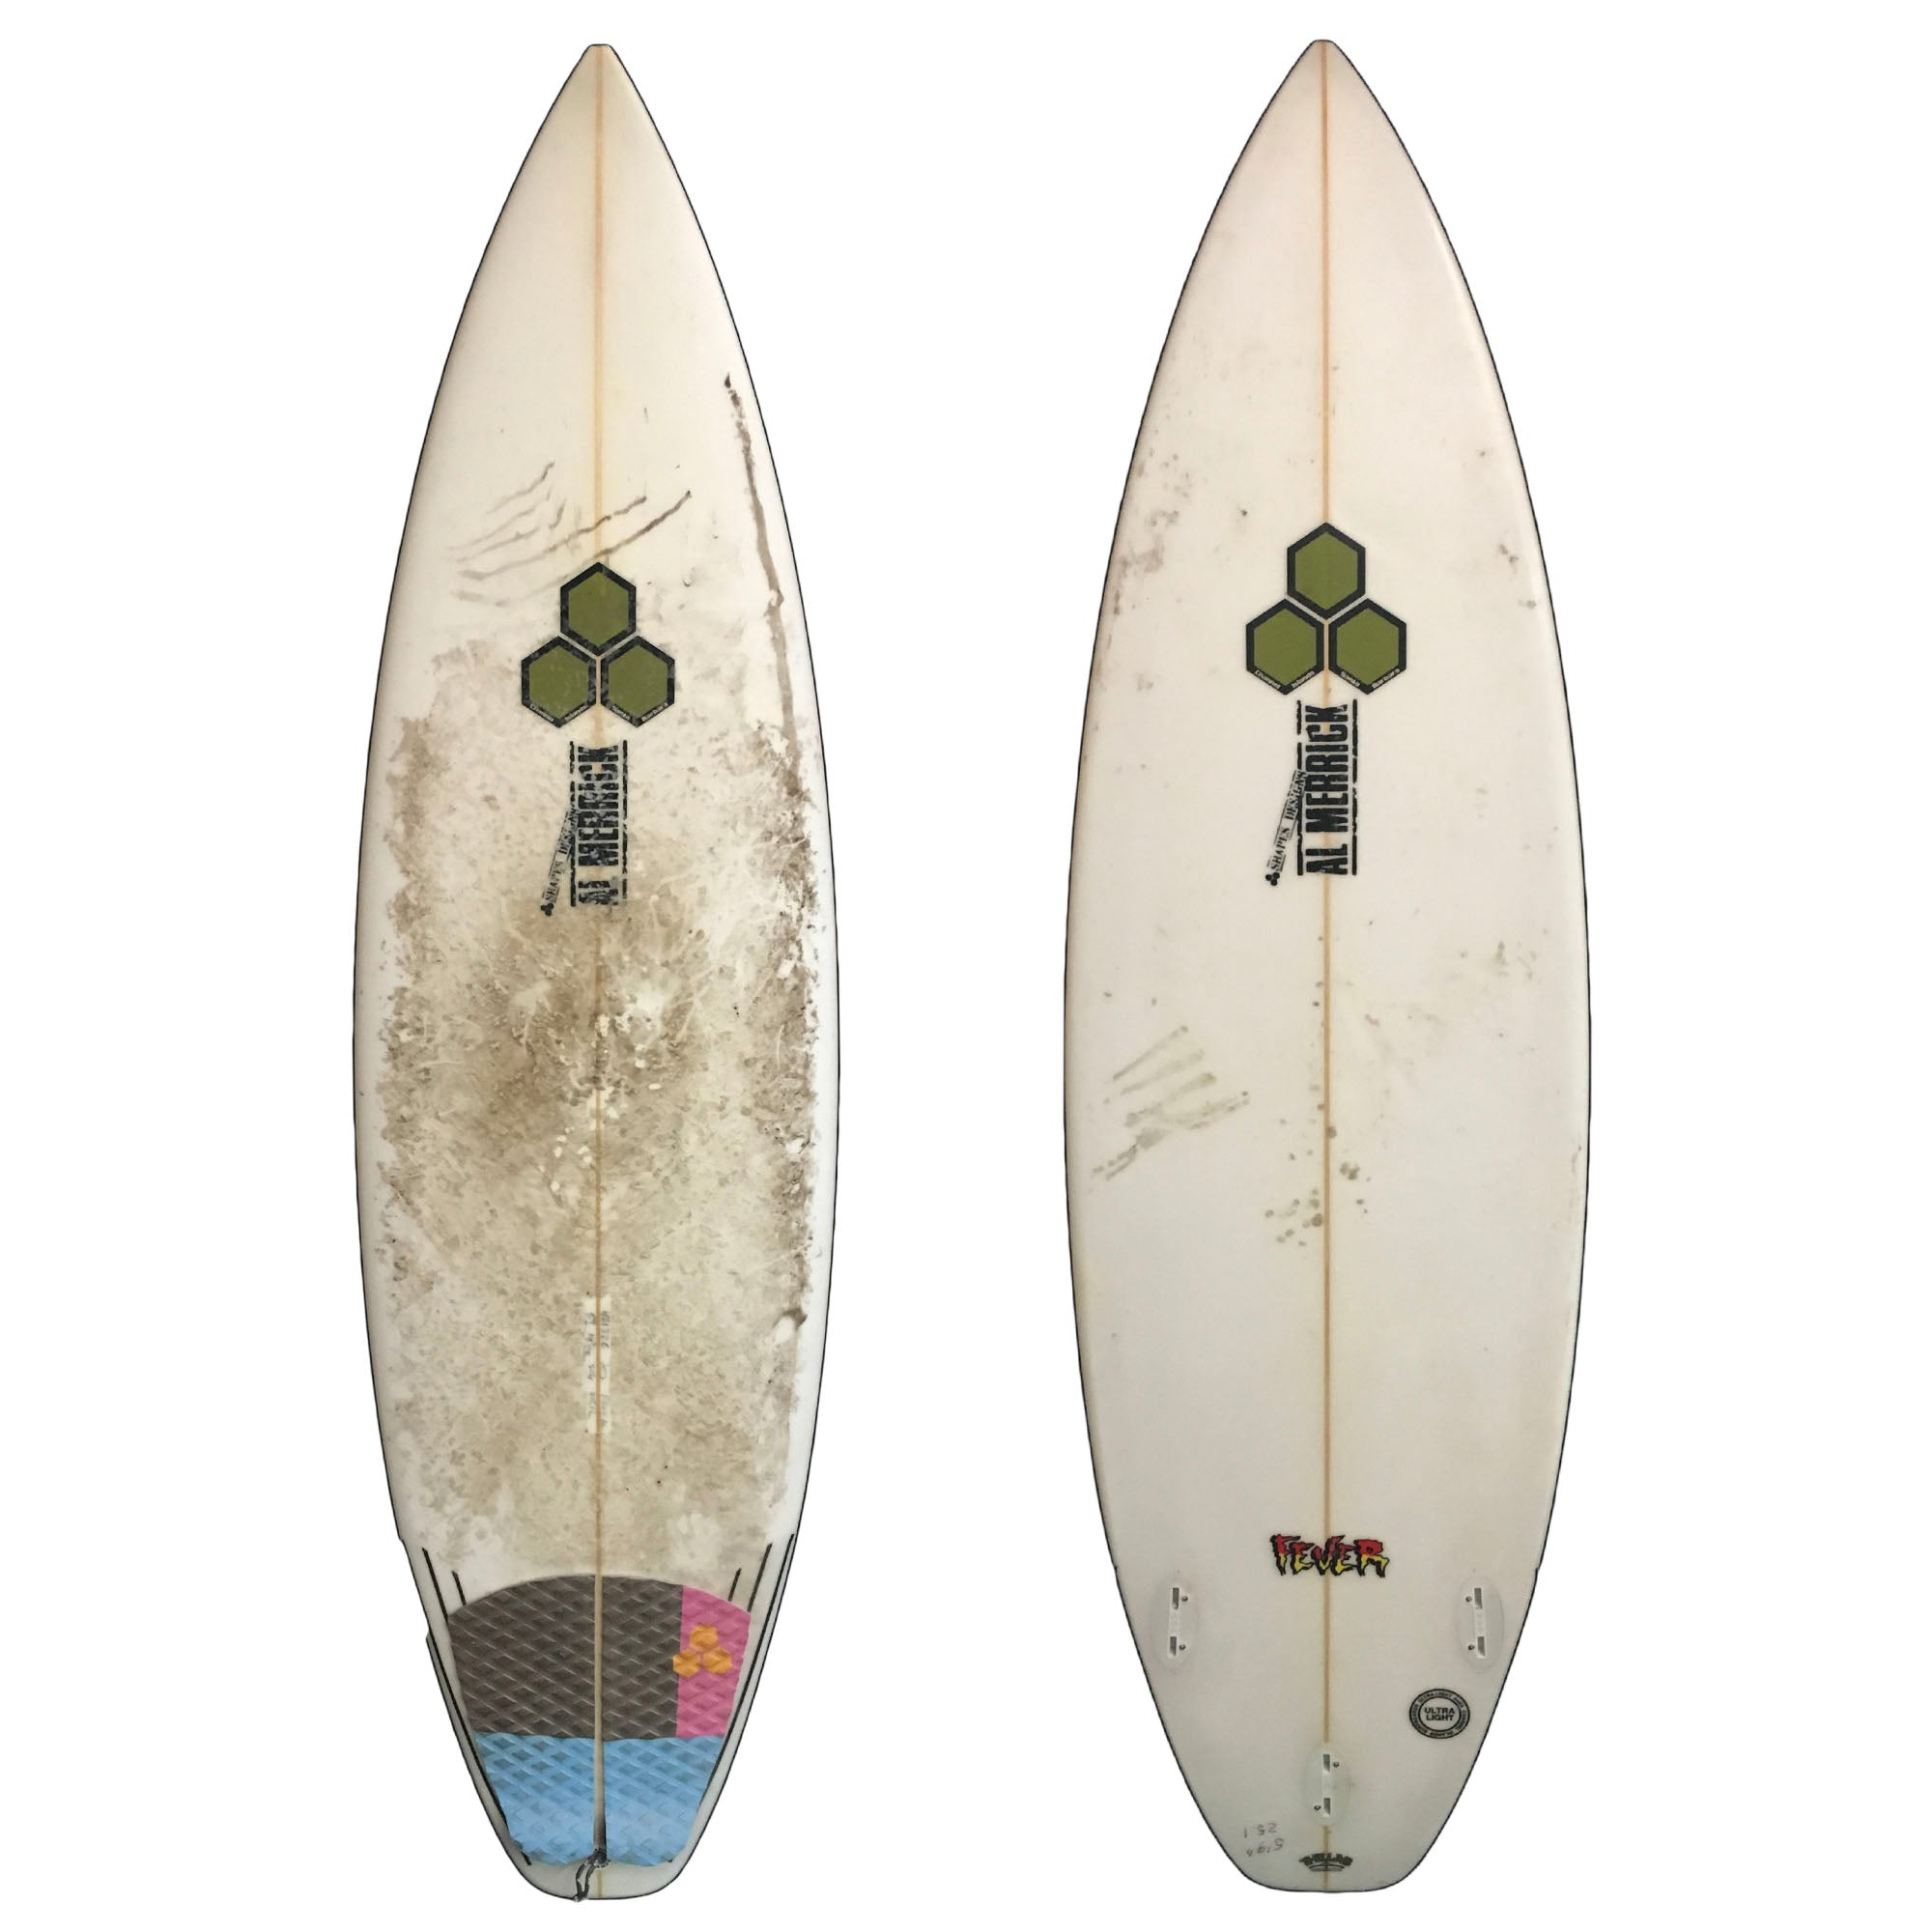 Channel Islands Fever 5'9 Used Surfboard (Team custom)